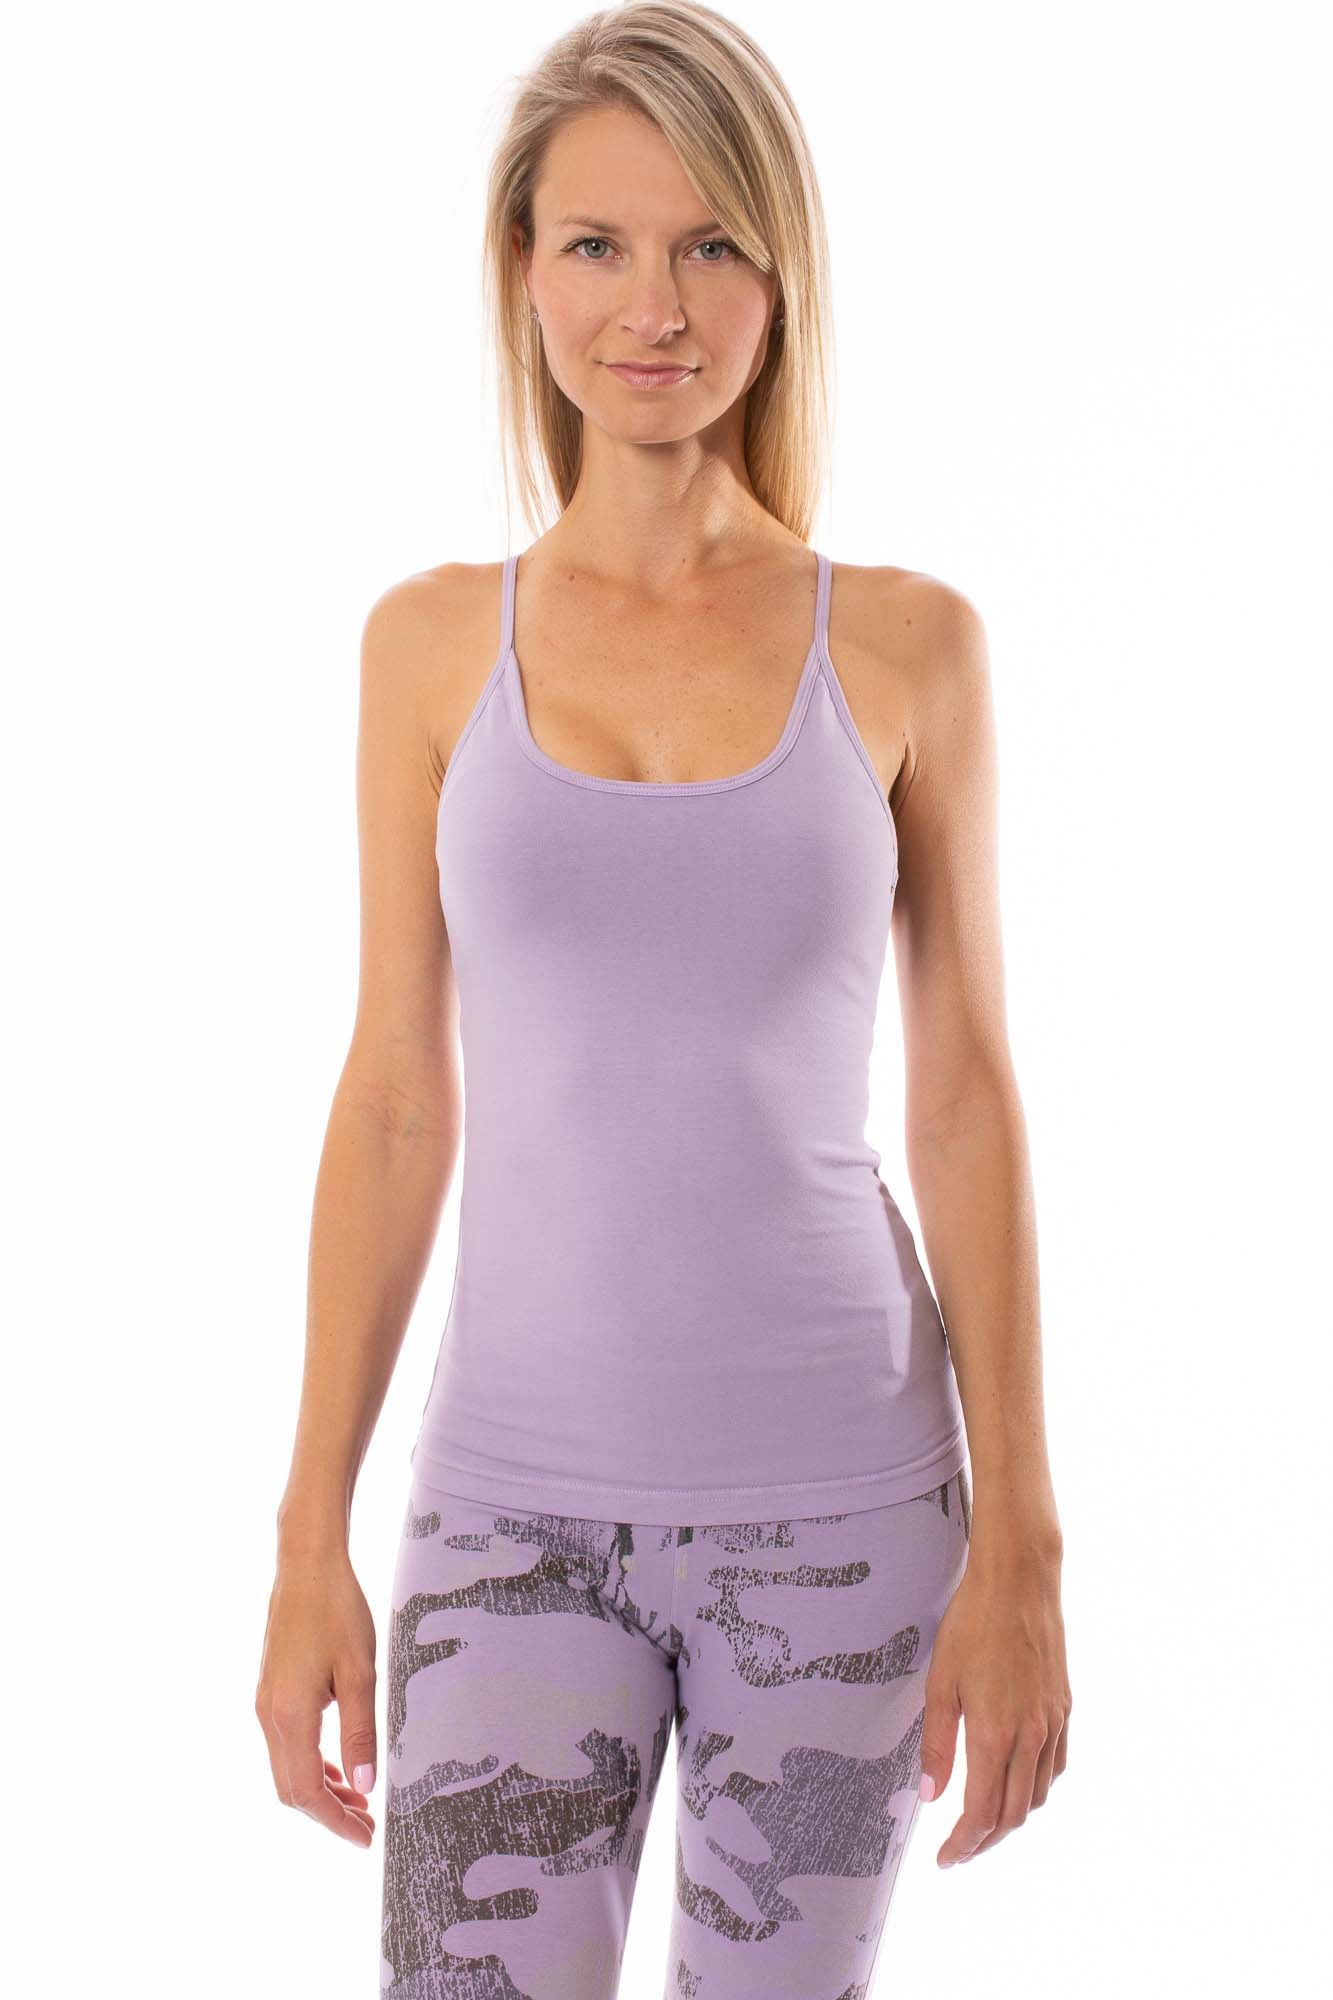 Hard Tail Forever - Freestyle Tank W/Bra (W-329, Lavender)